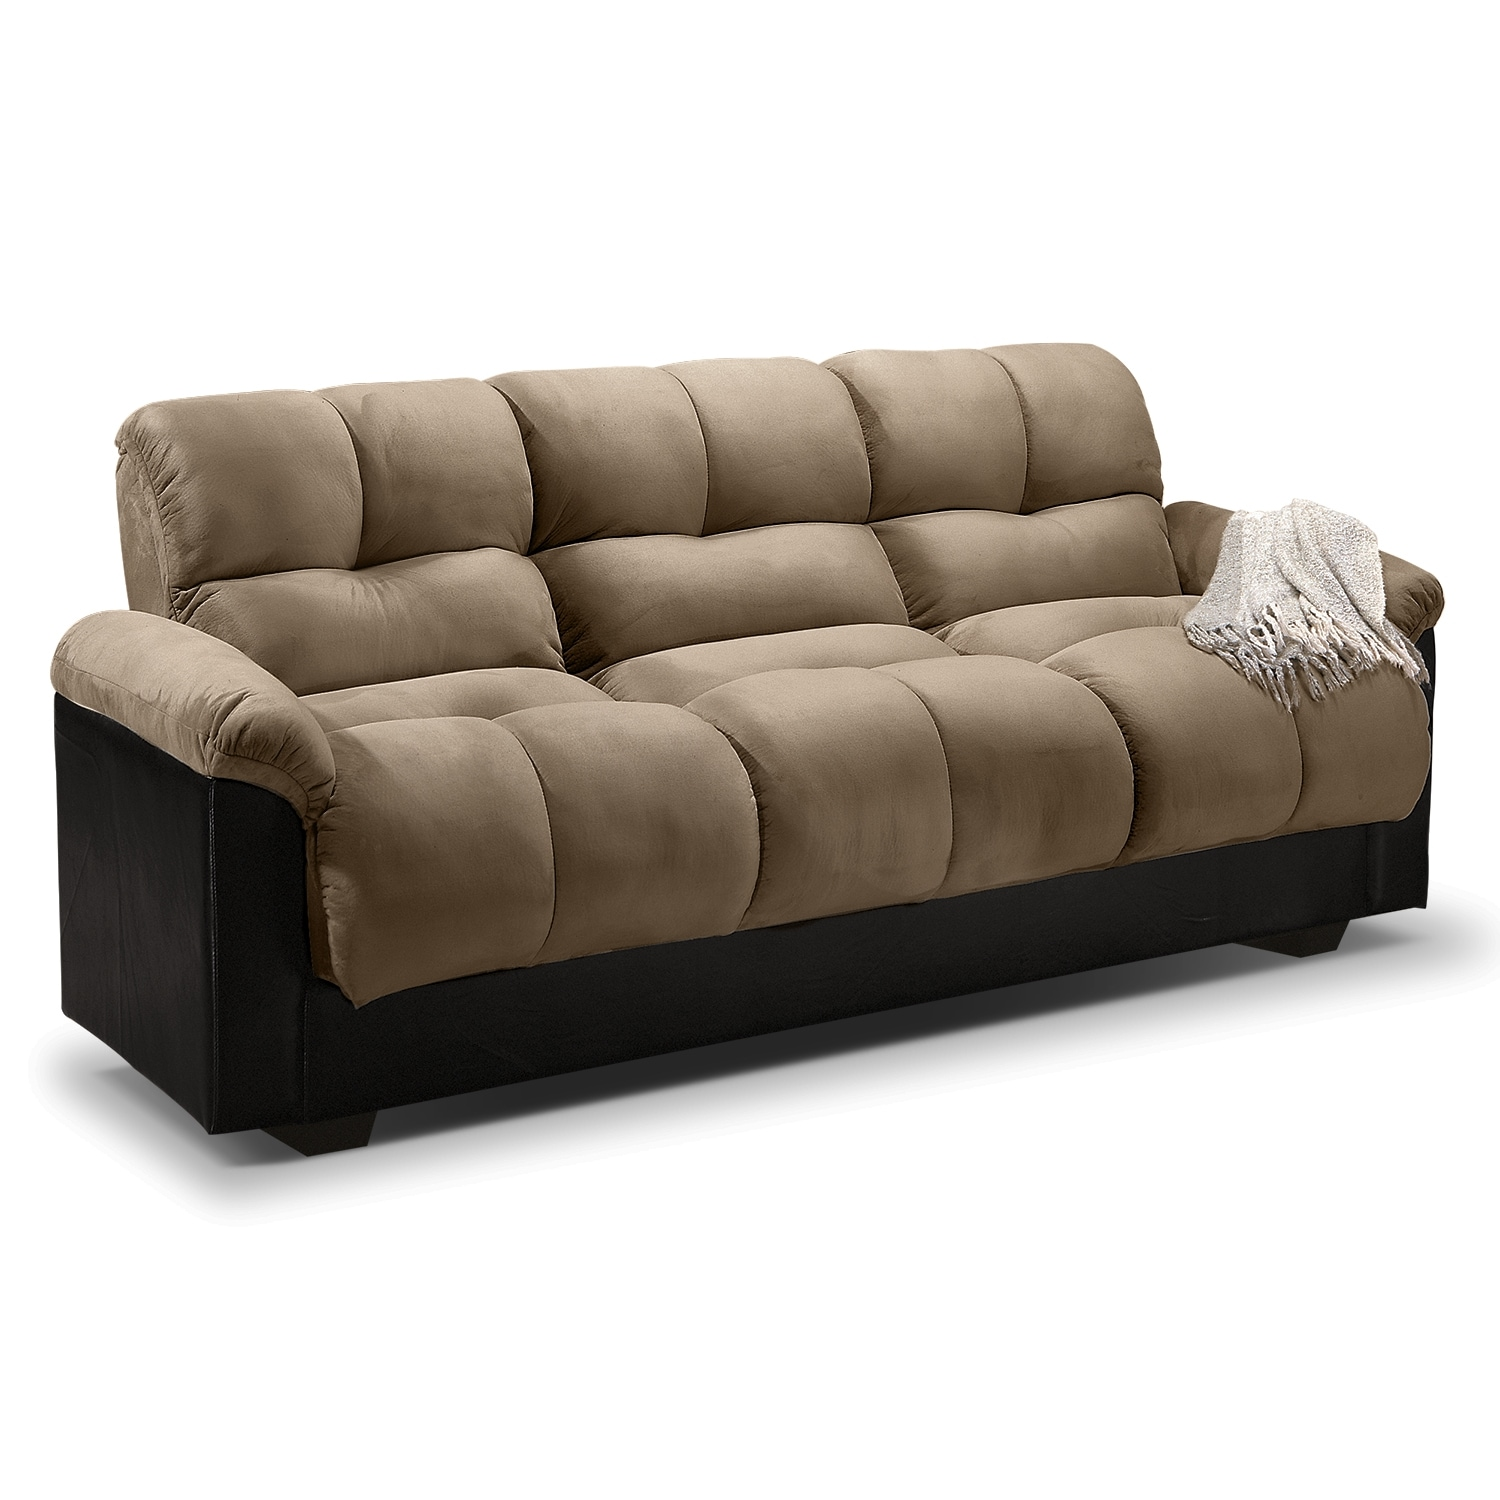 Superb Couch Bed With Storage Part - 10: ... Sofa Bed With Storage - Hazelnut. Hover To Zoom